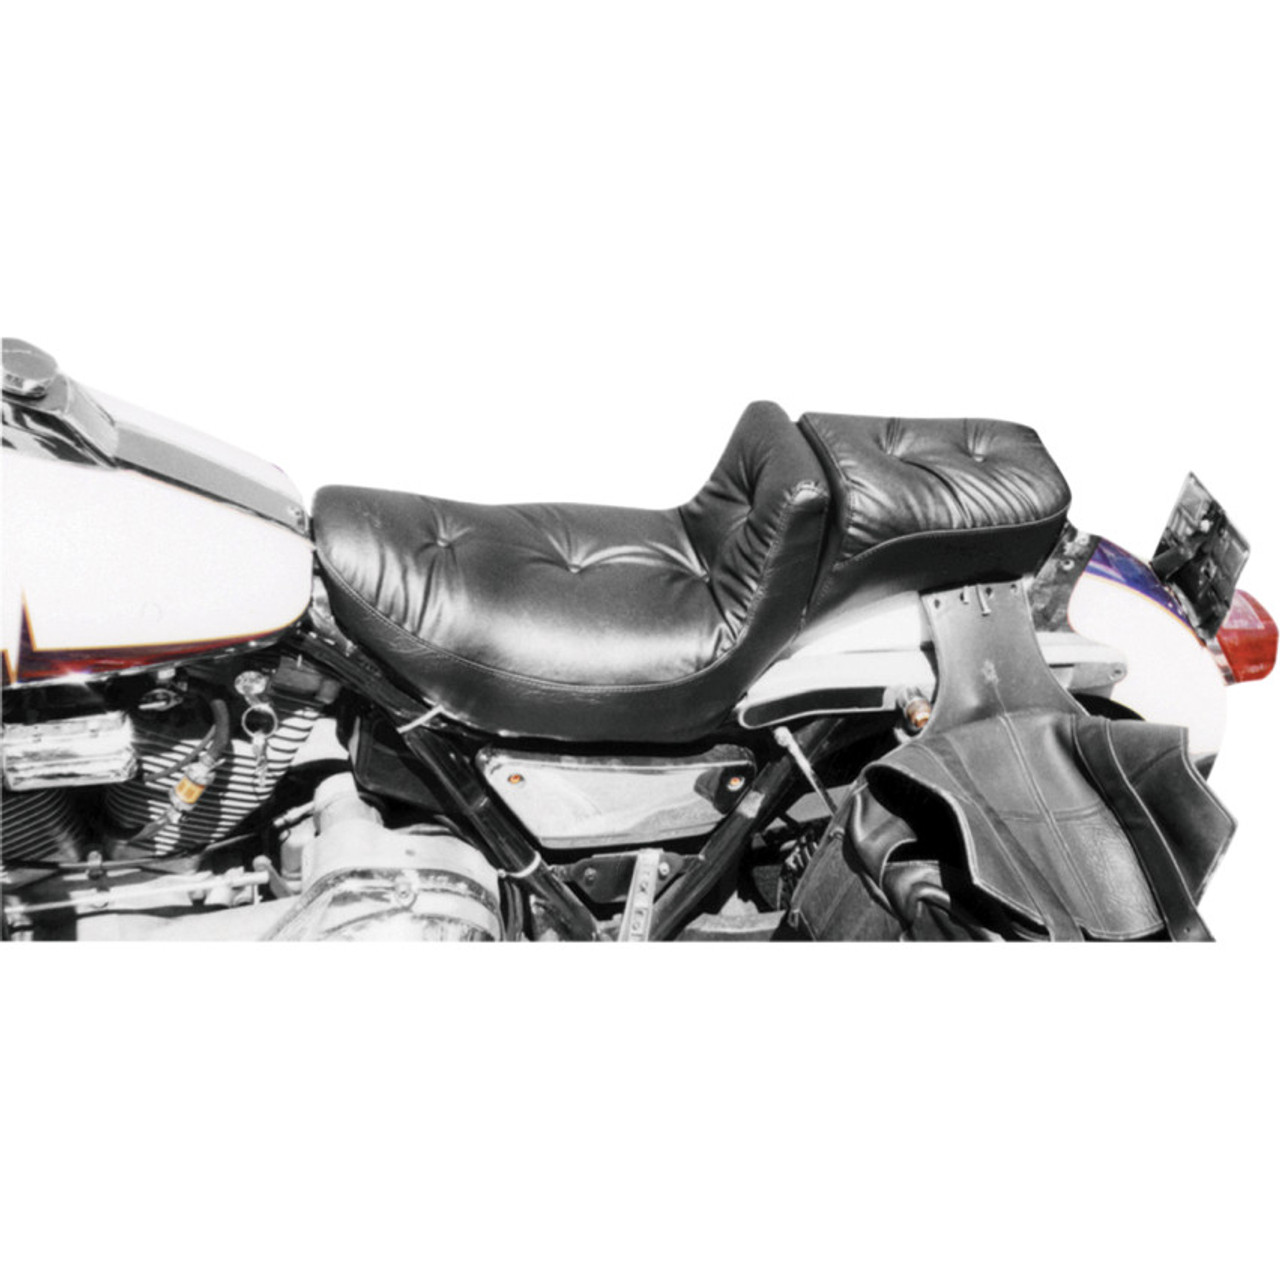 Mustang Regal Duke Pillow Seat for Harley FXR - Get Lowered Cycles